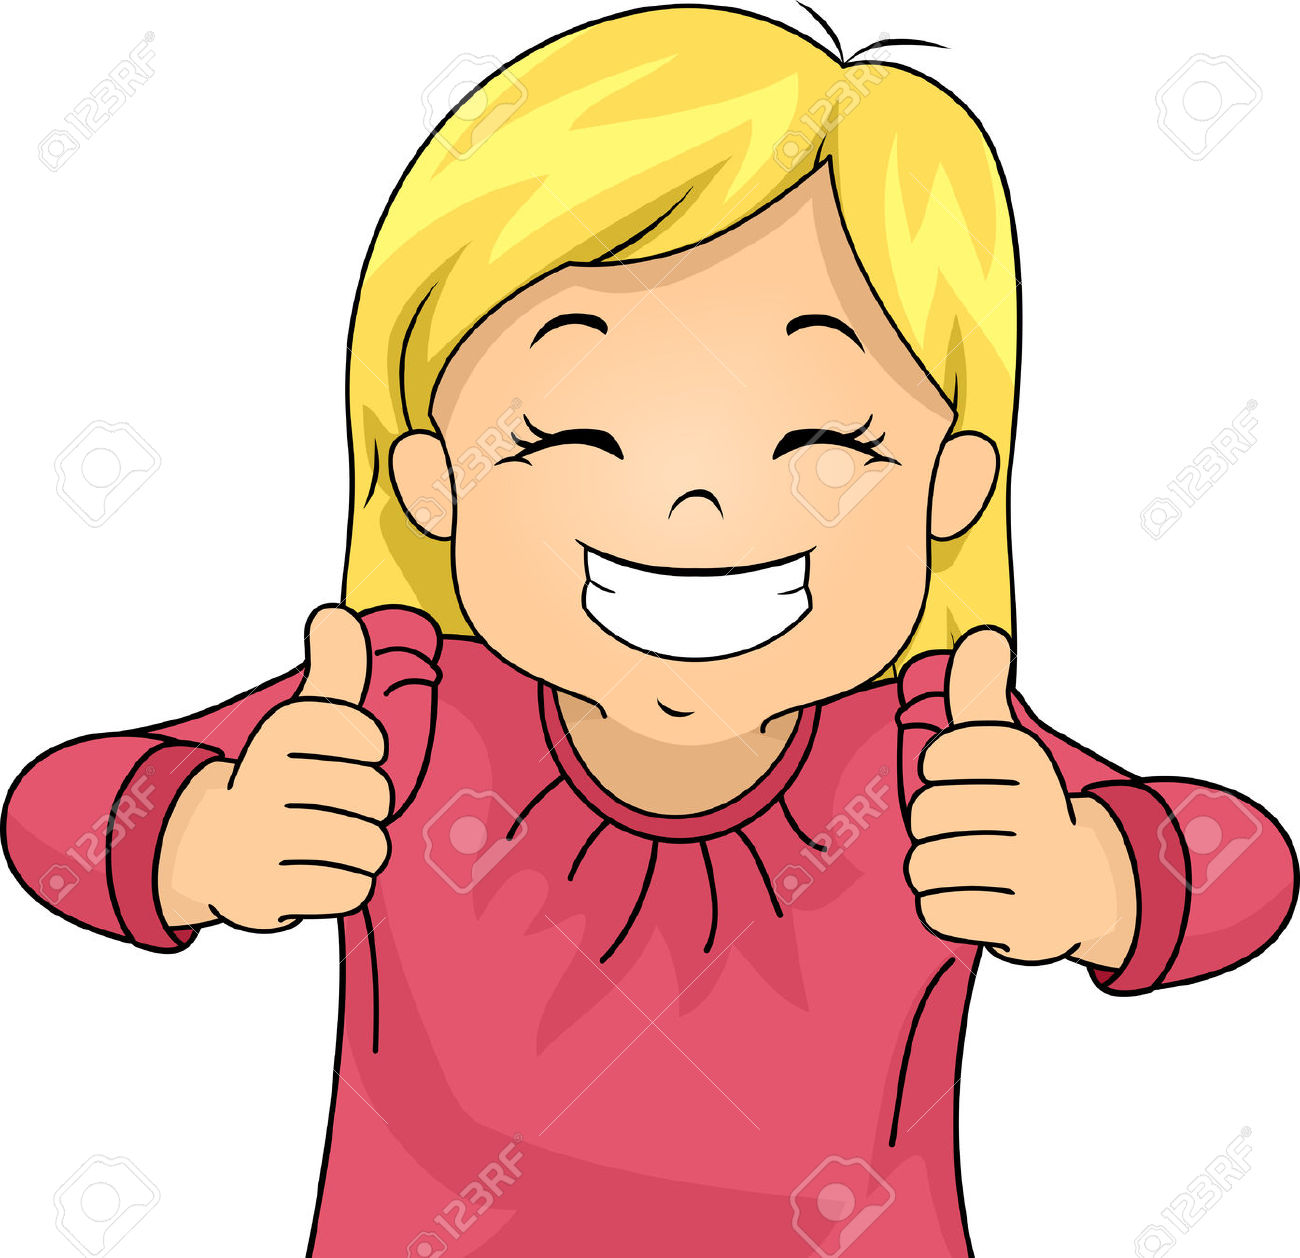 Baby girl thumbs up clipart. Giving clipartfest kid stok